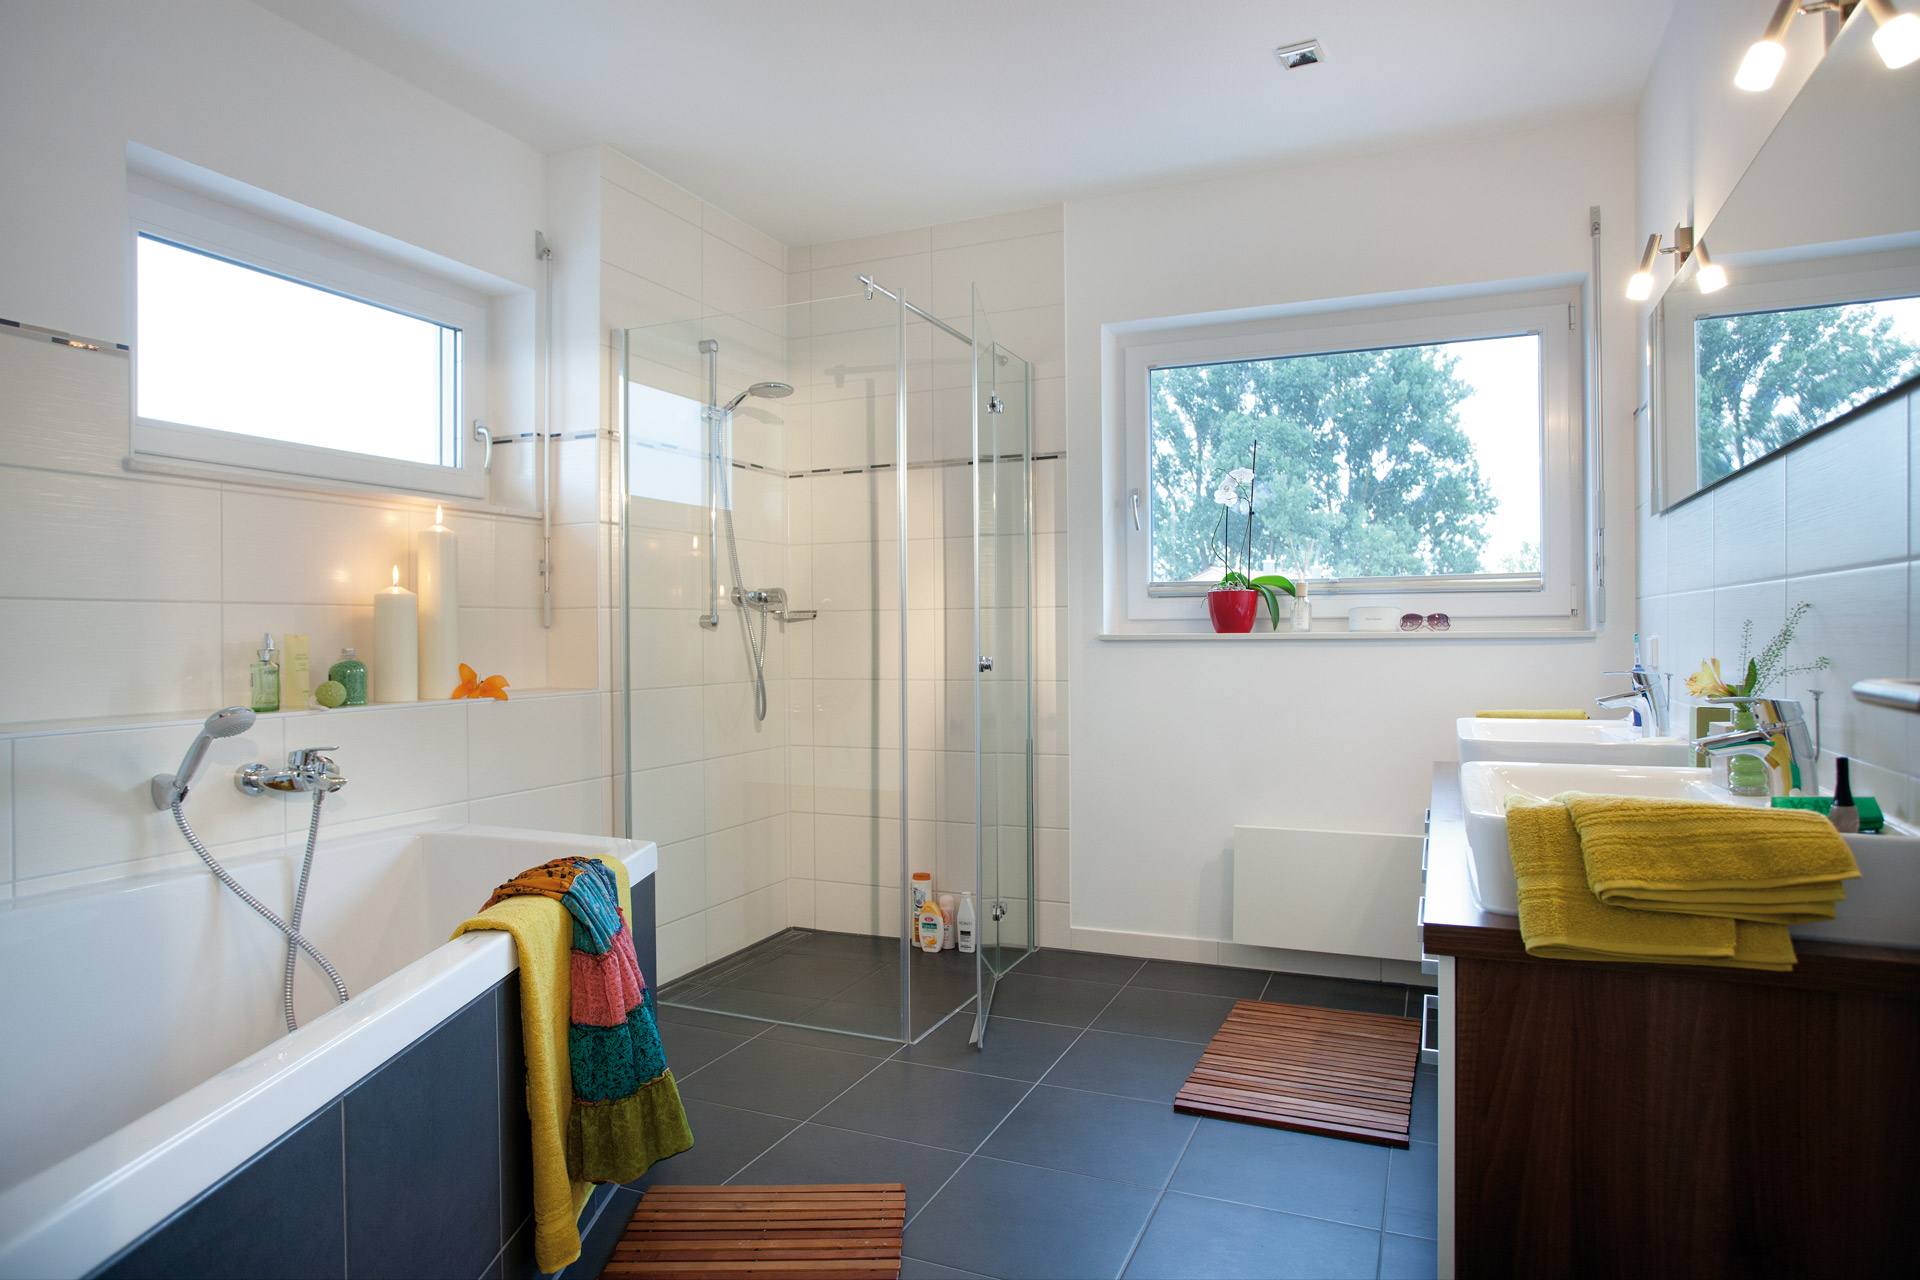 Bathroom with large bathtub, two waschbasins and shower